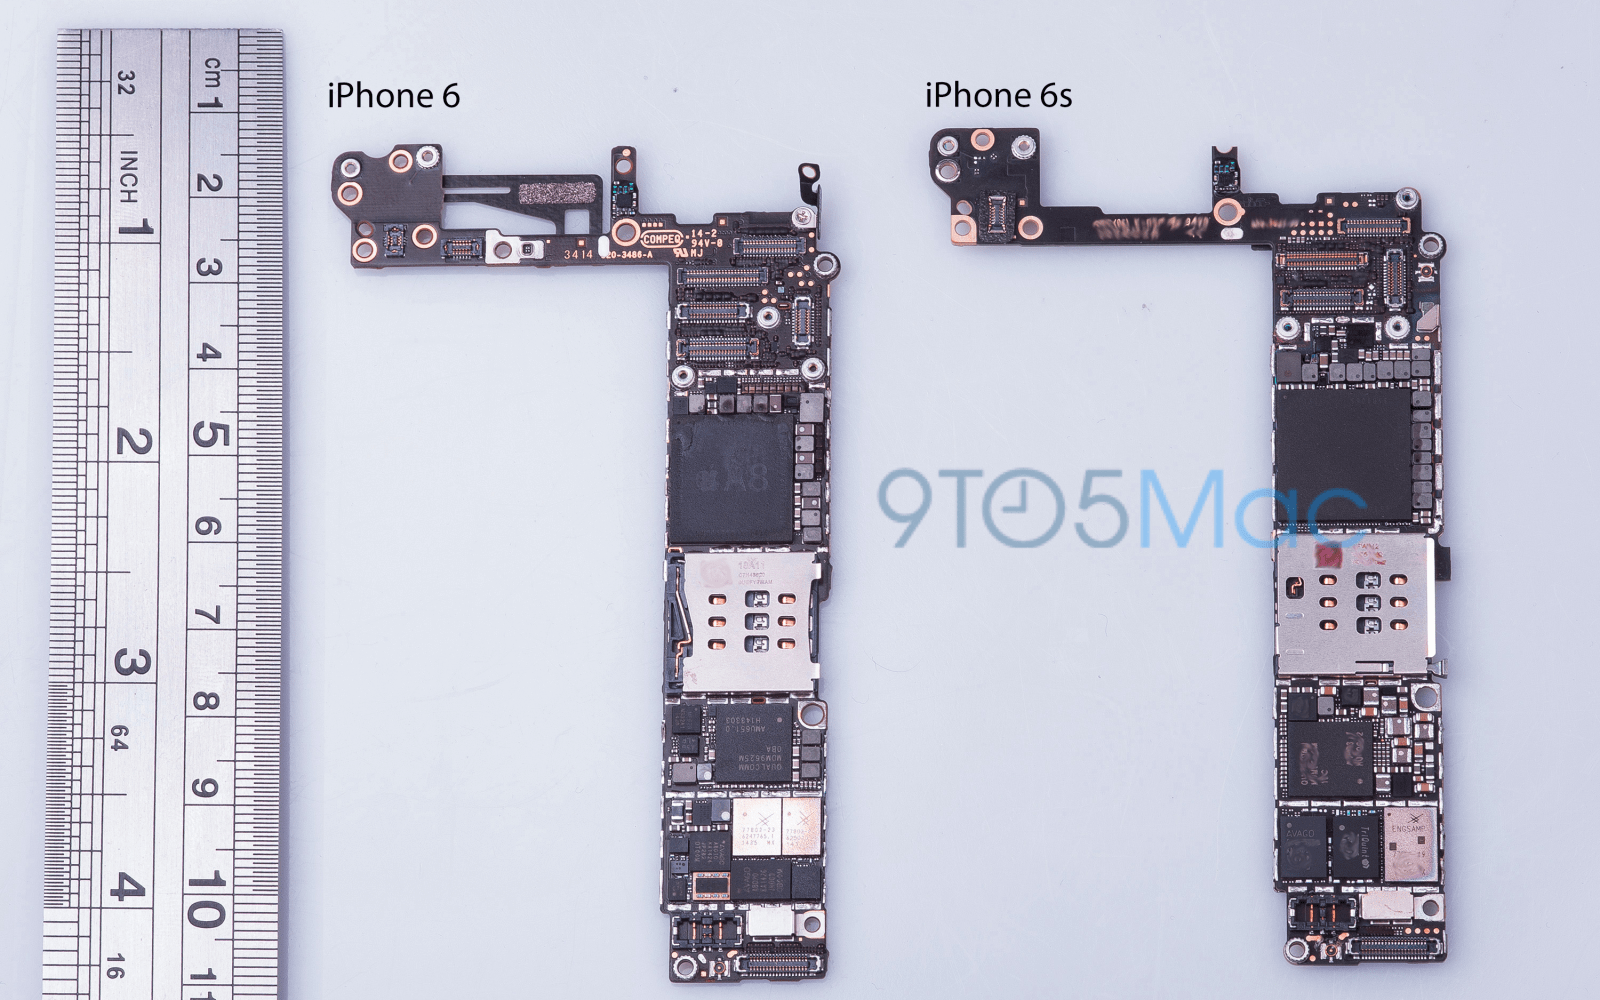 New iPhone 6S images show updated NFC, 16GB base storage, fewer chips +  design tweaks